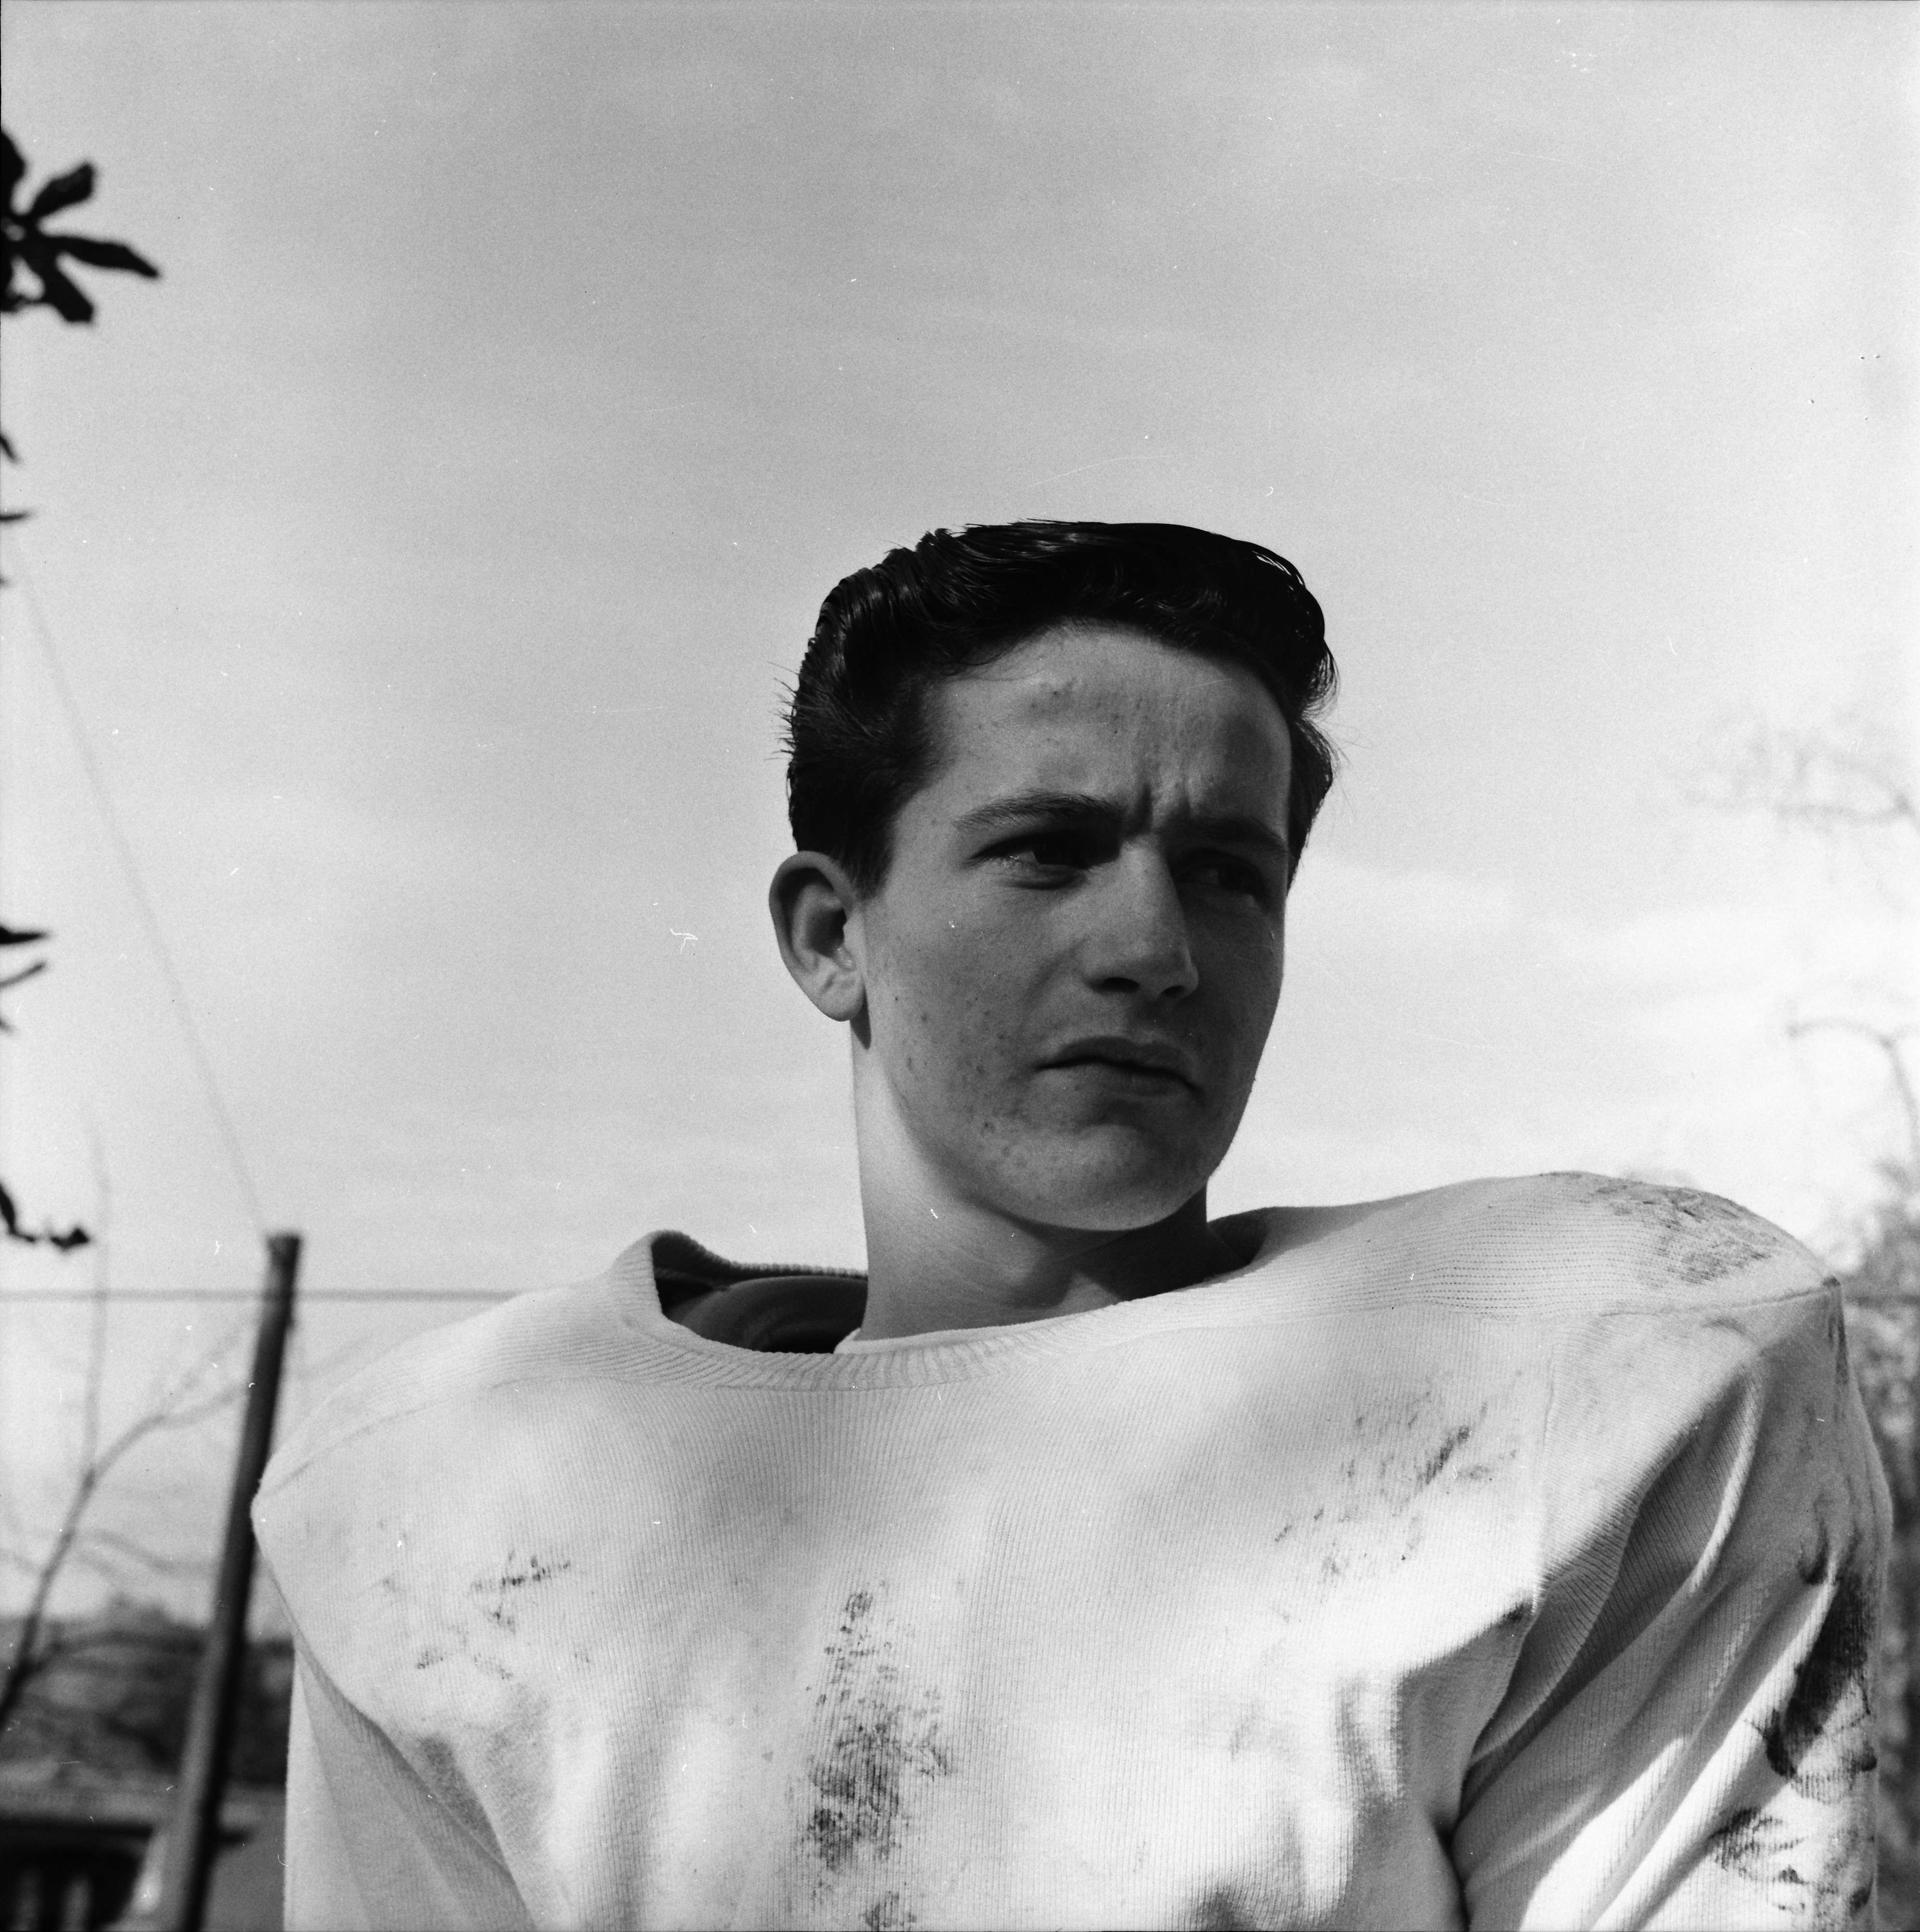 Francis O'Donnell, St. Thomas High School Football Player, Will Be In Battle With Dearborn Sacred Heart, September 1959 image